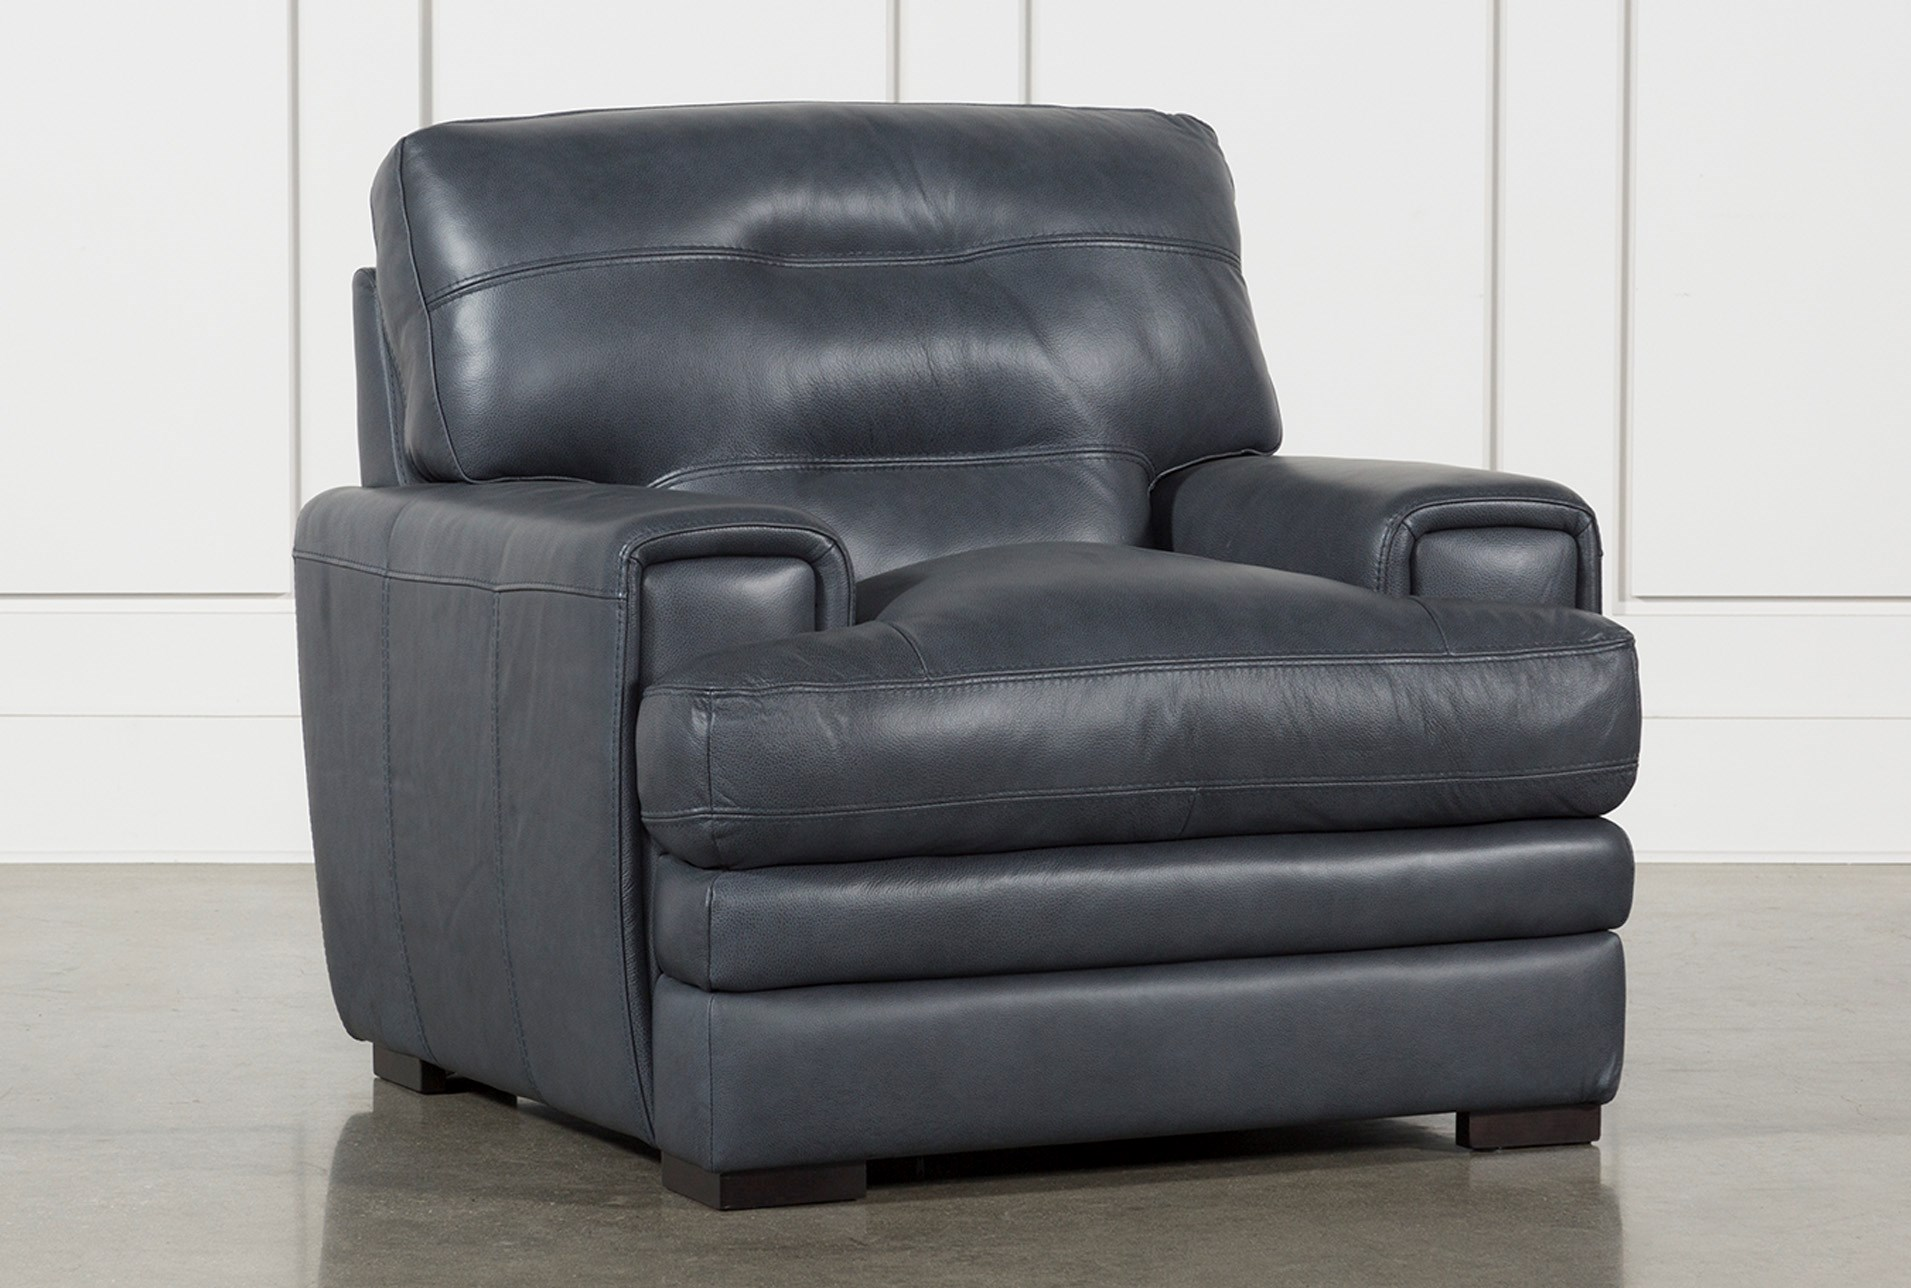 Gina blue leather chair qty 1 has been successfully added to your cart